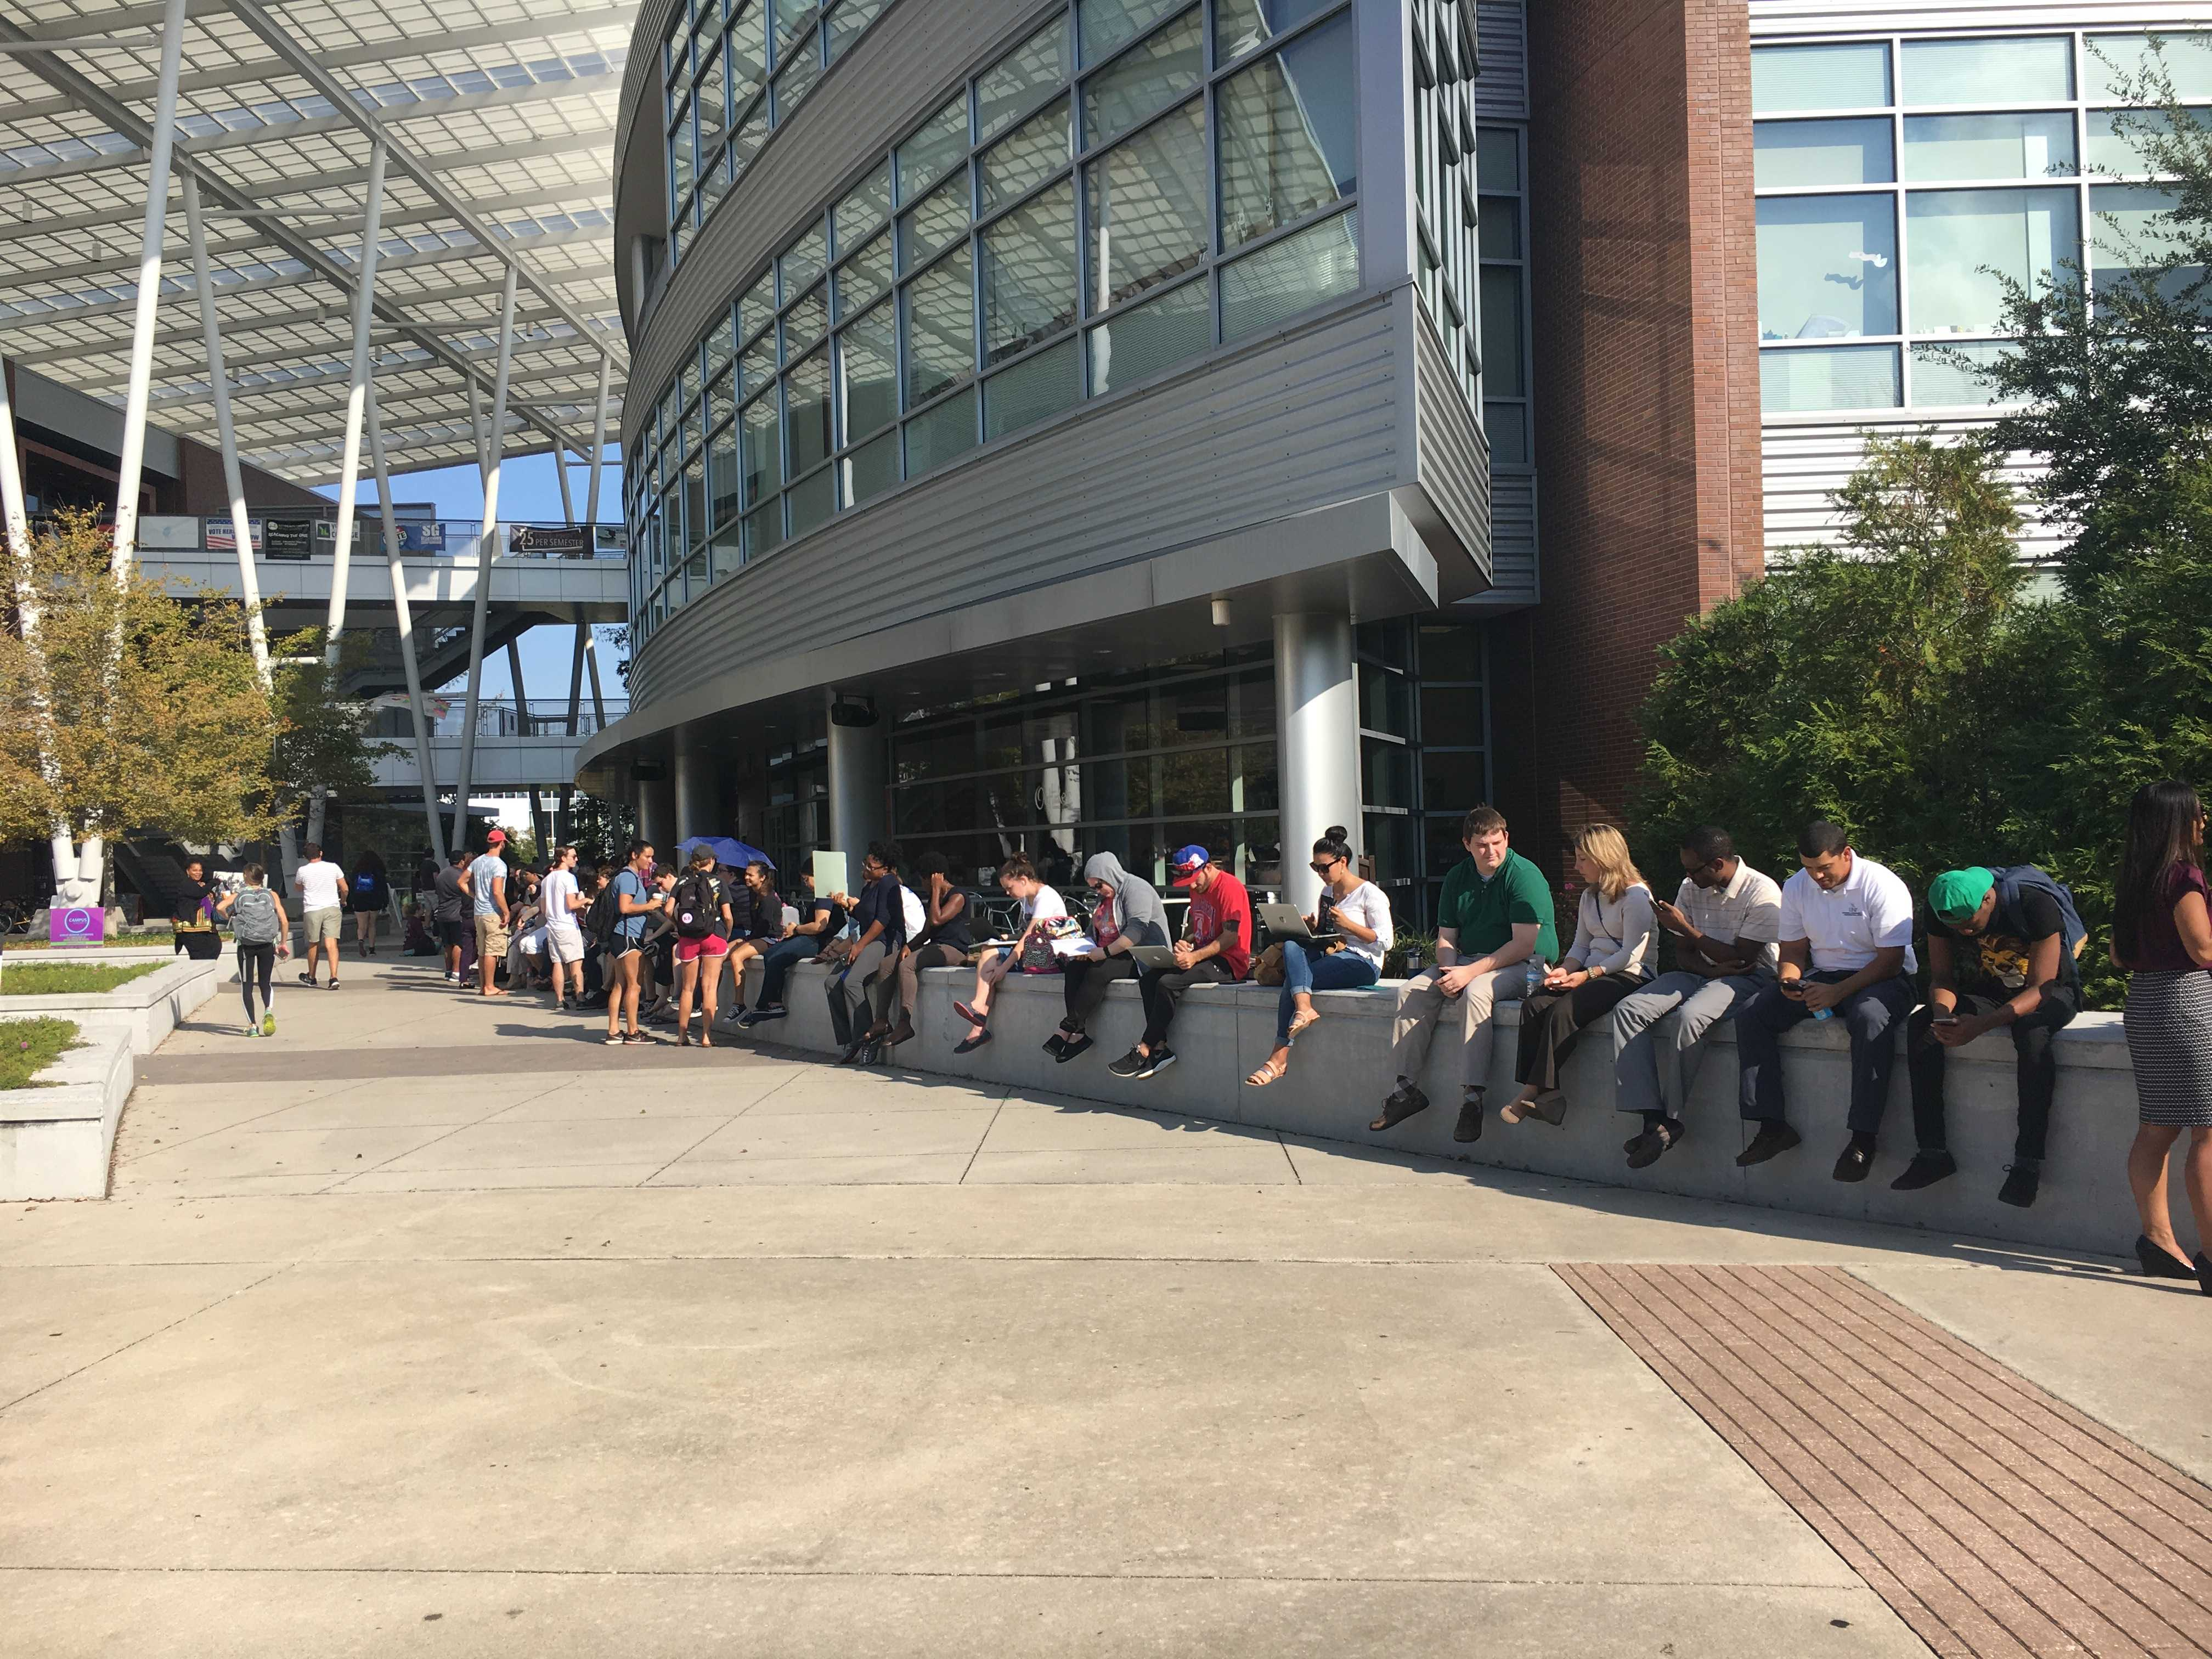 Over 1,000 students line up to get tickets for Obama